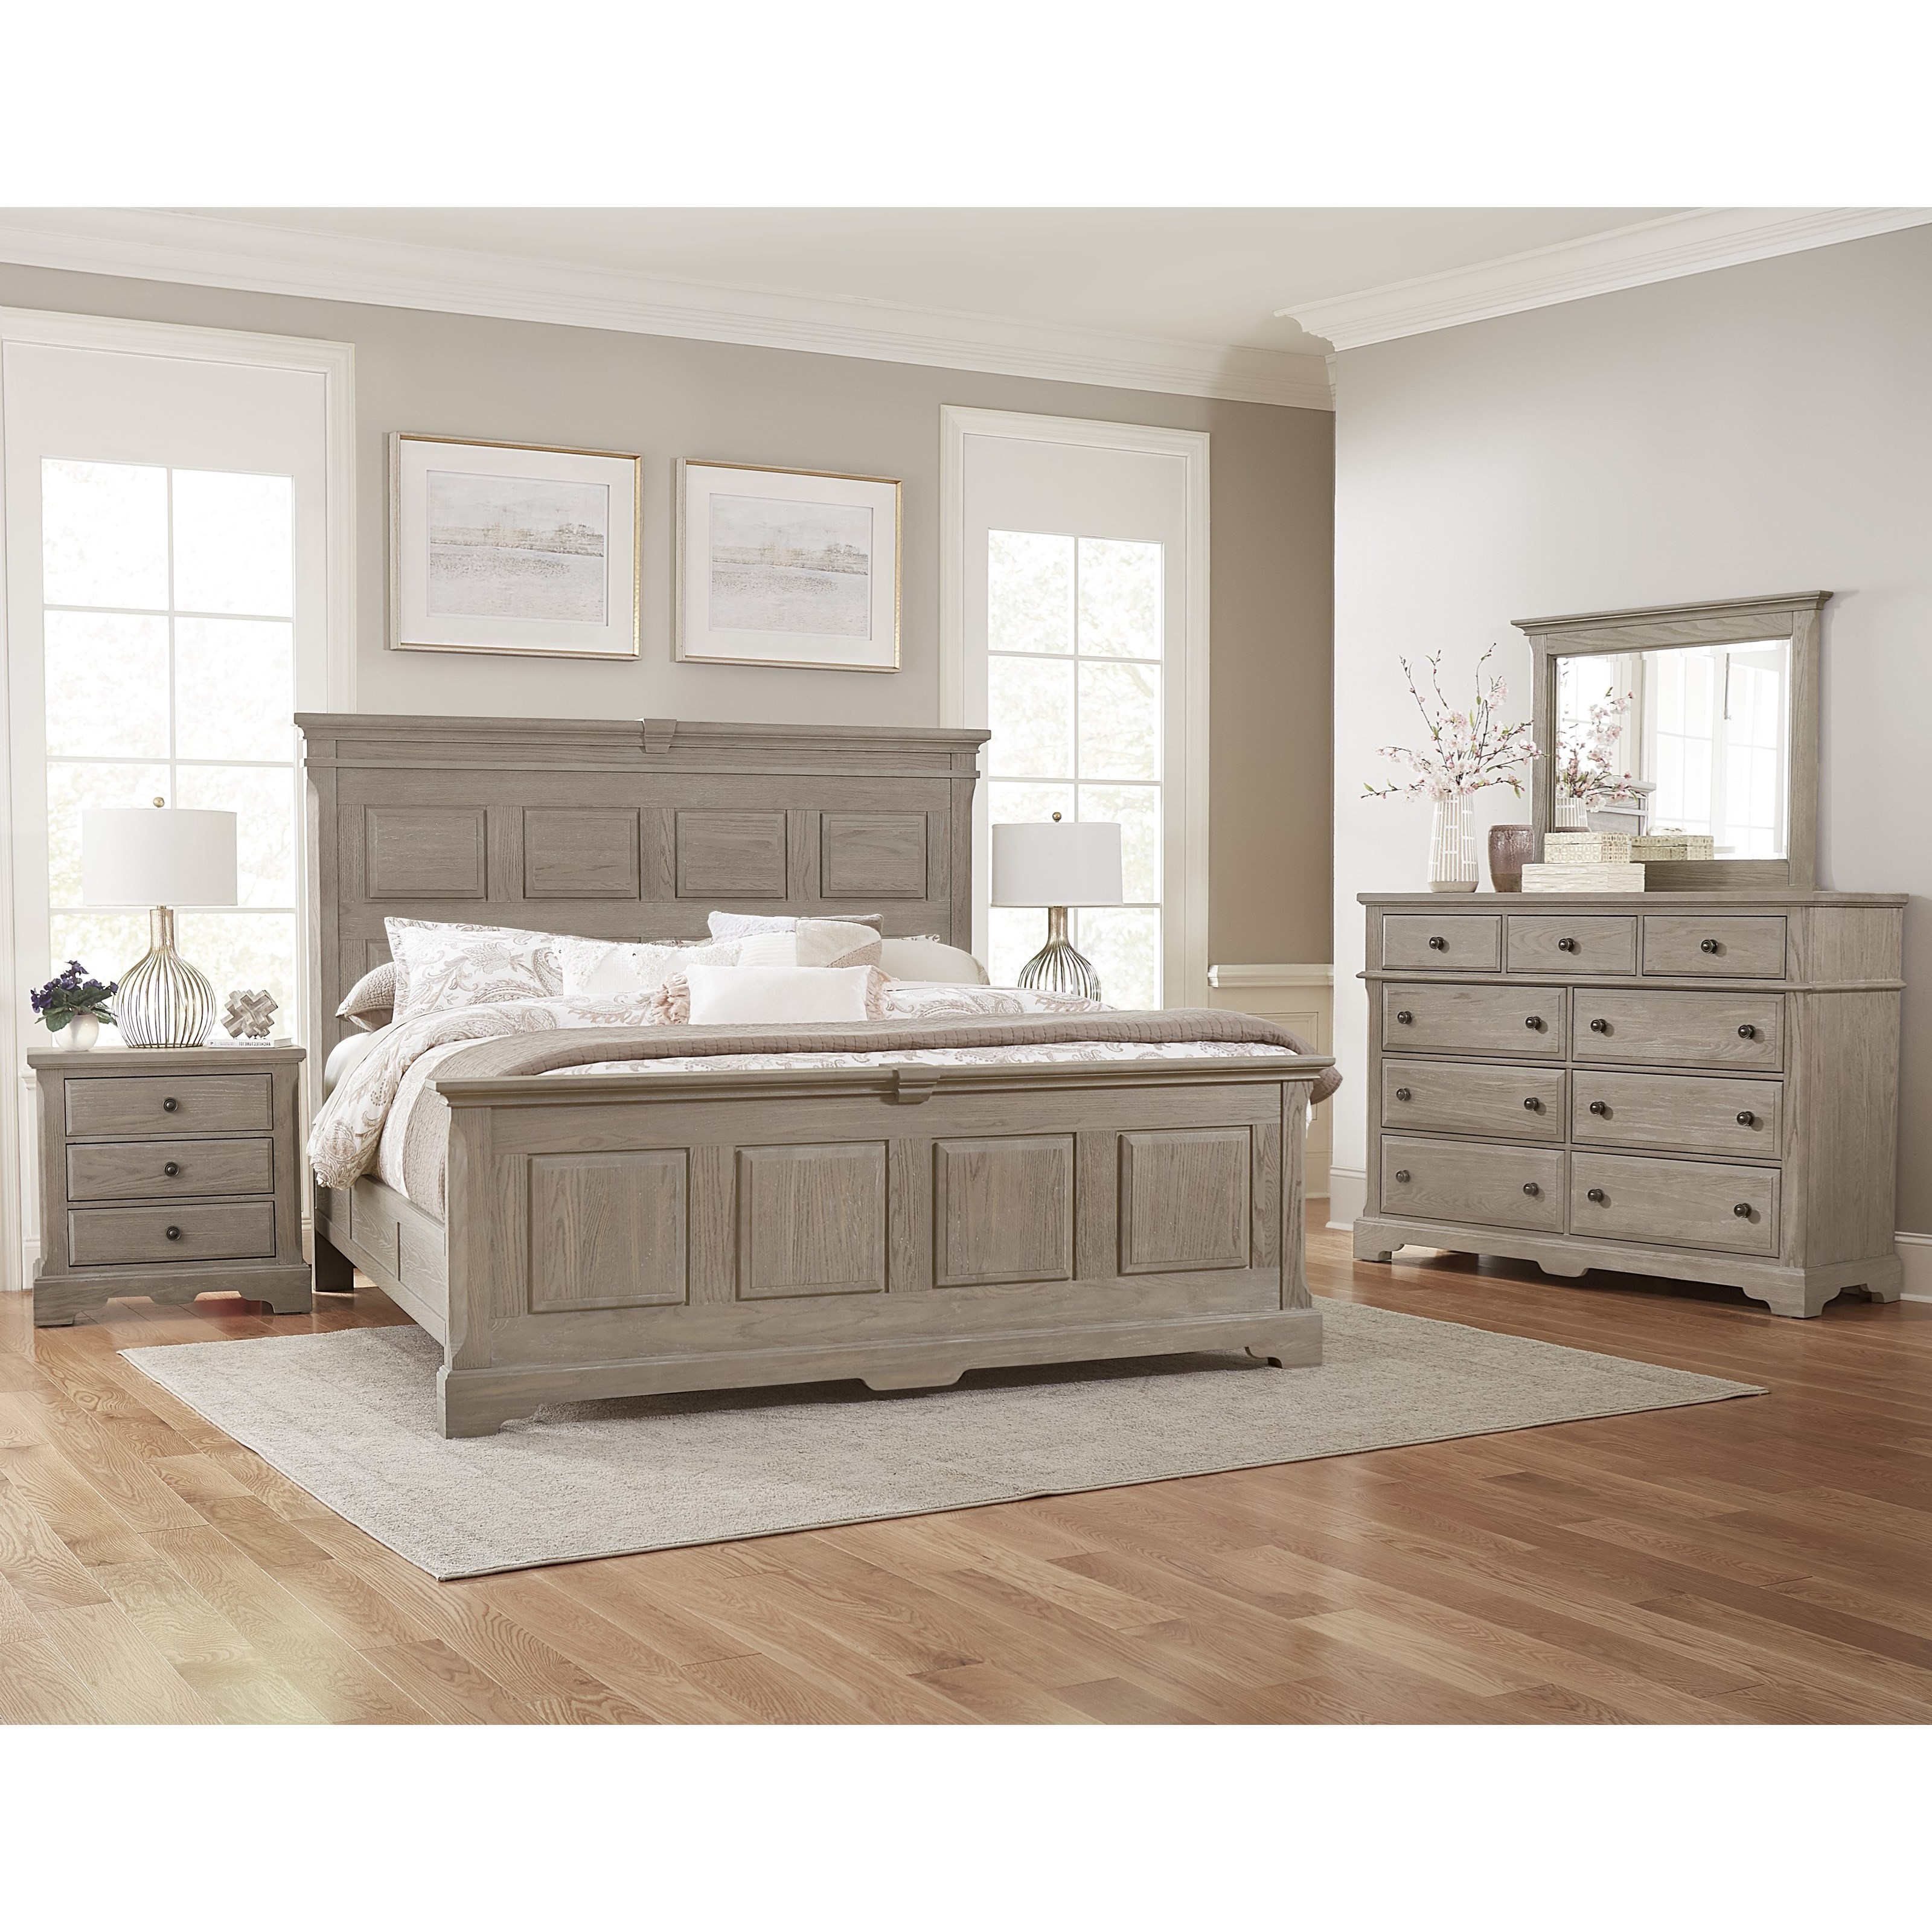 Heritage Queen Bedroom Group by Artisan & Post at Northeast Factory Direct